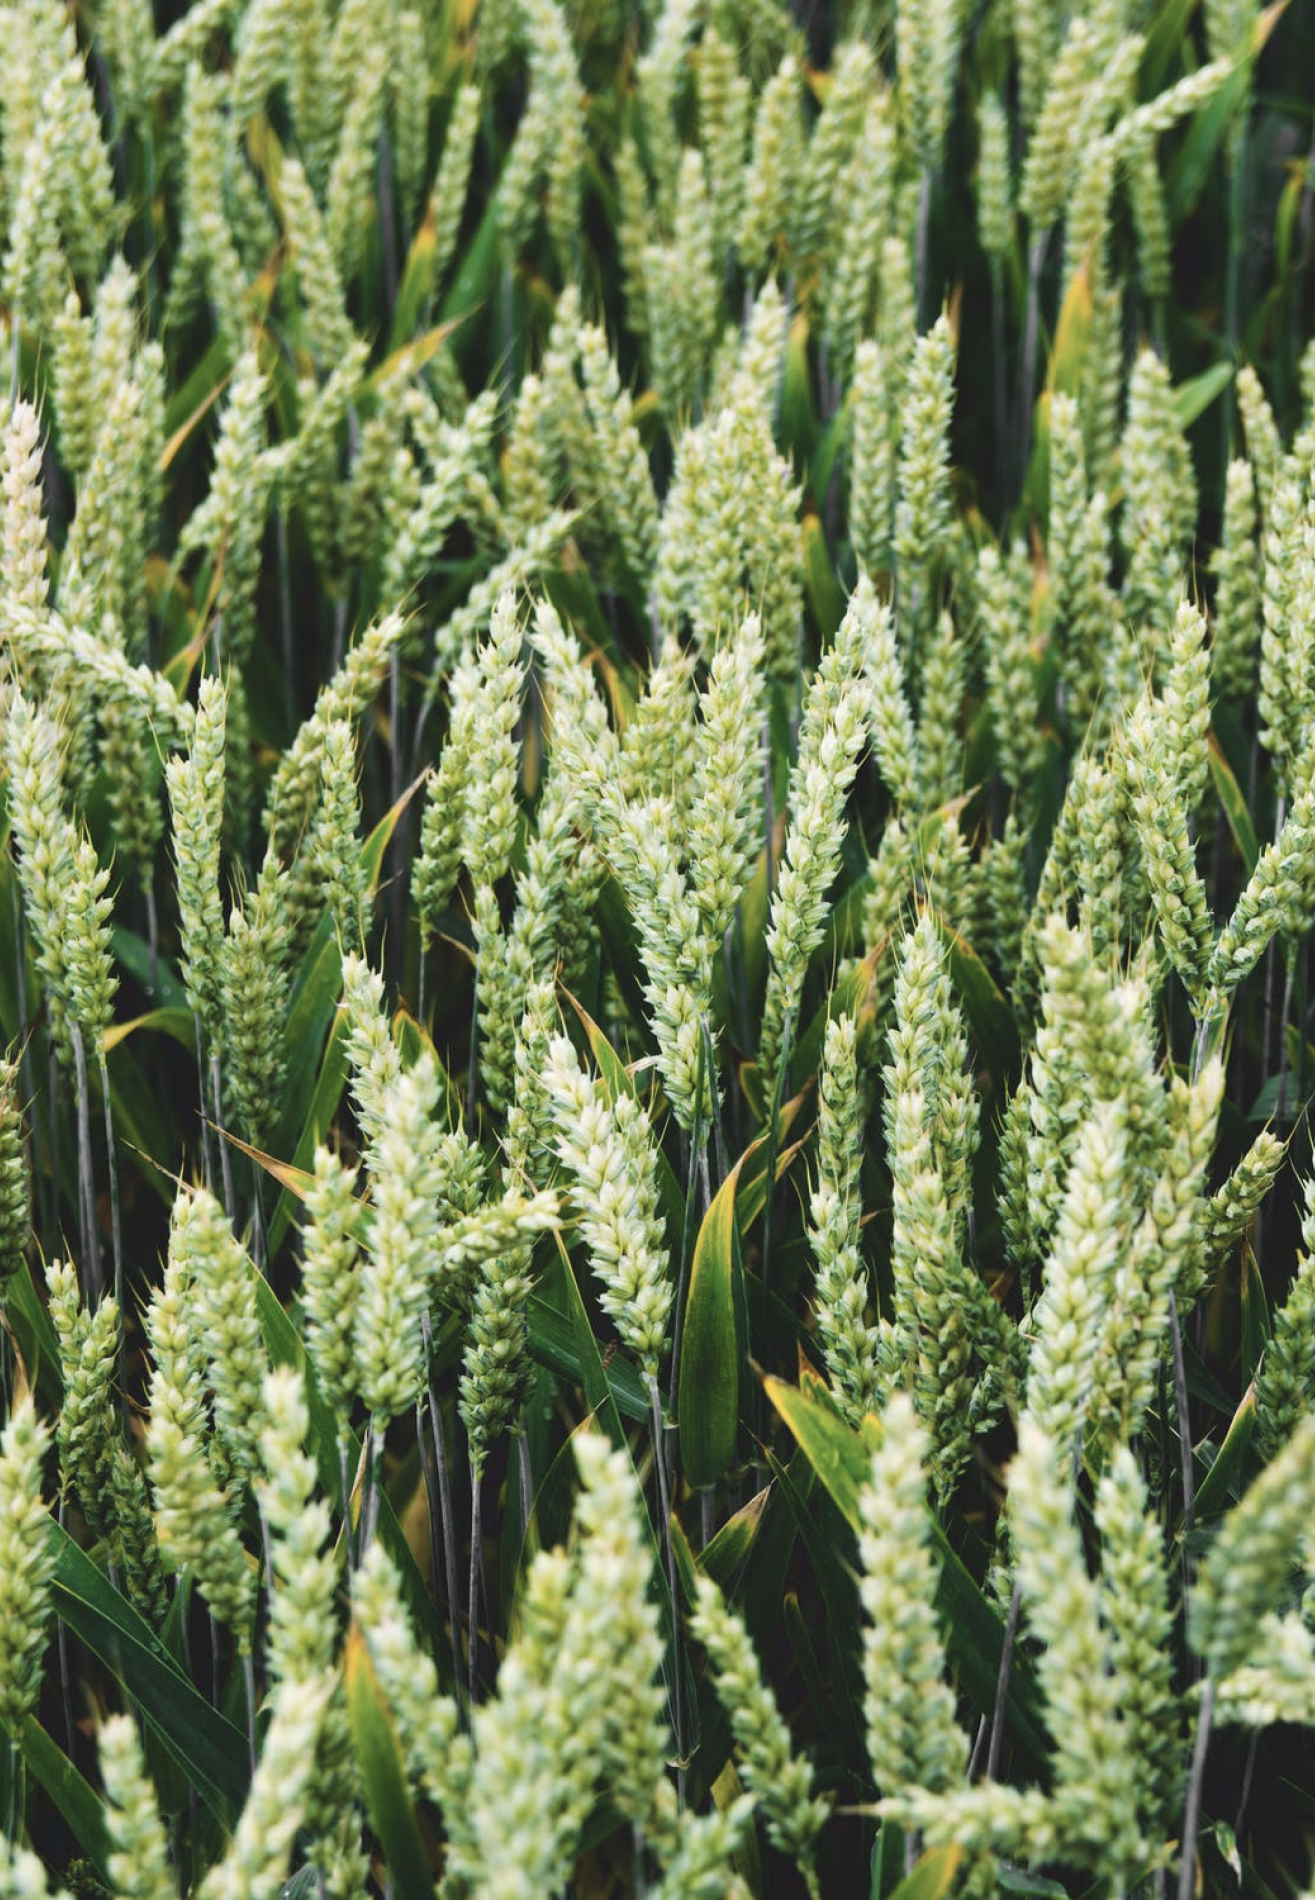 Closeup image of young growing wheat